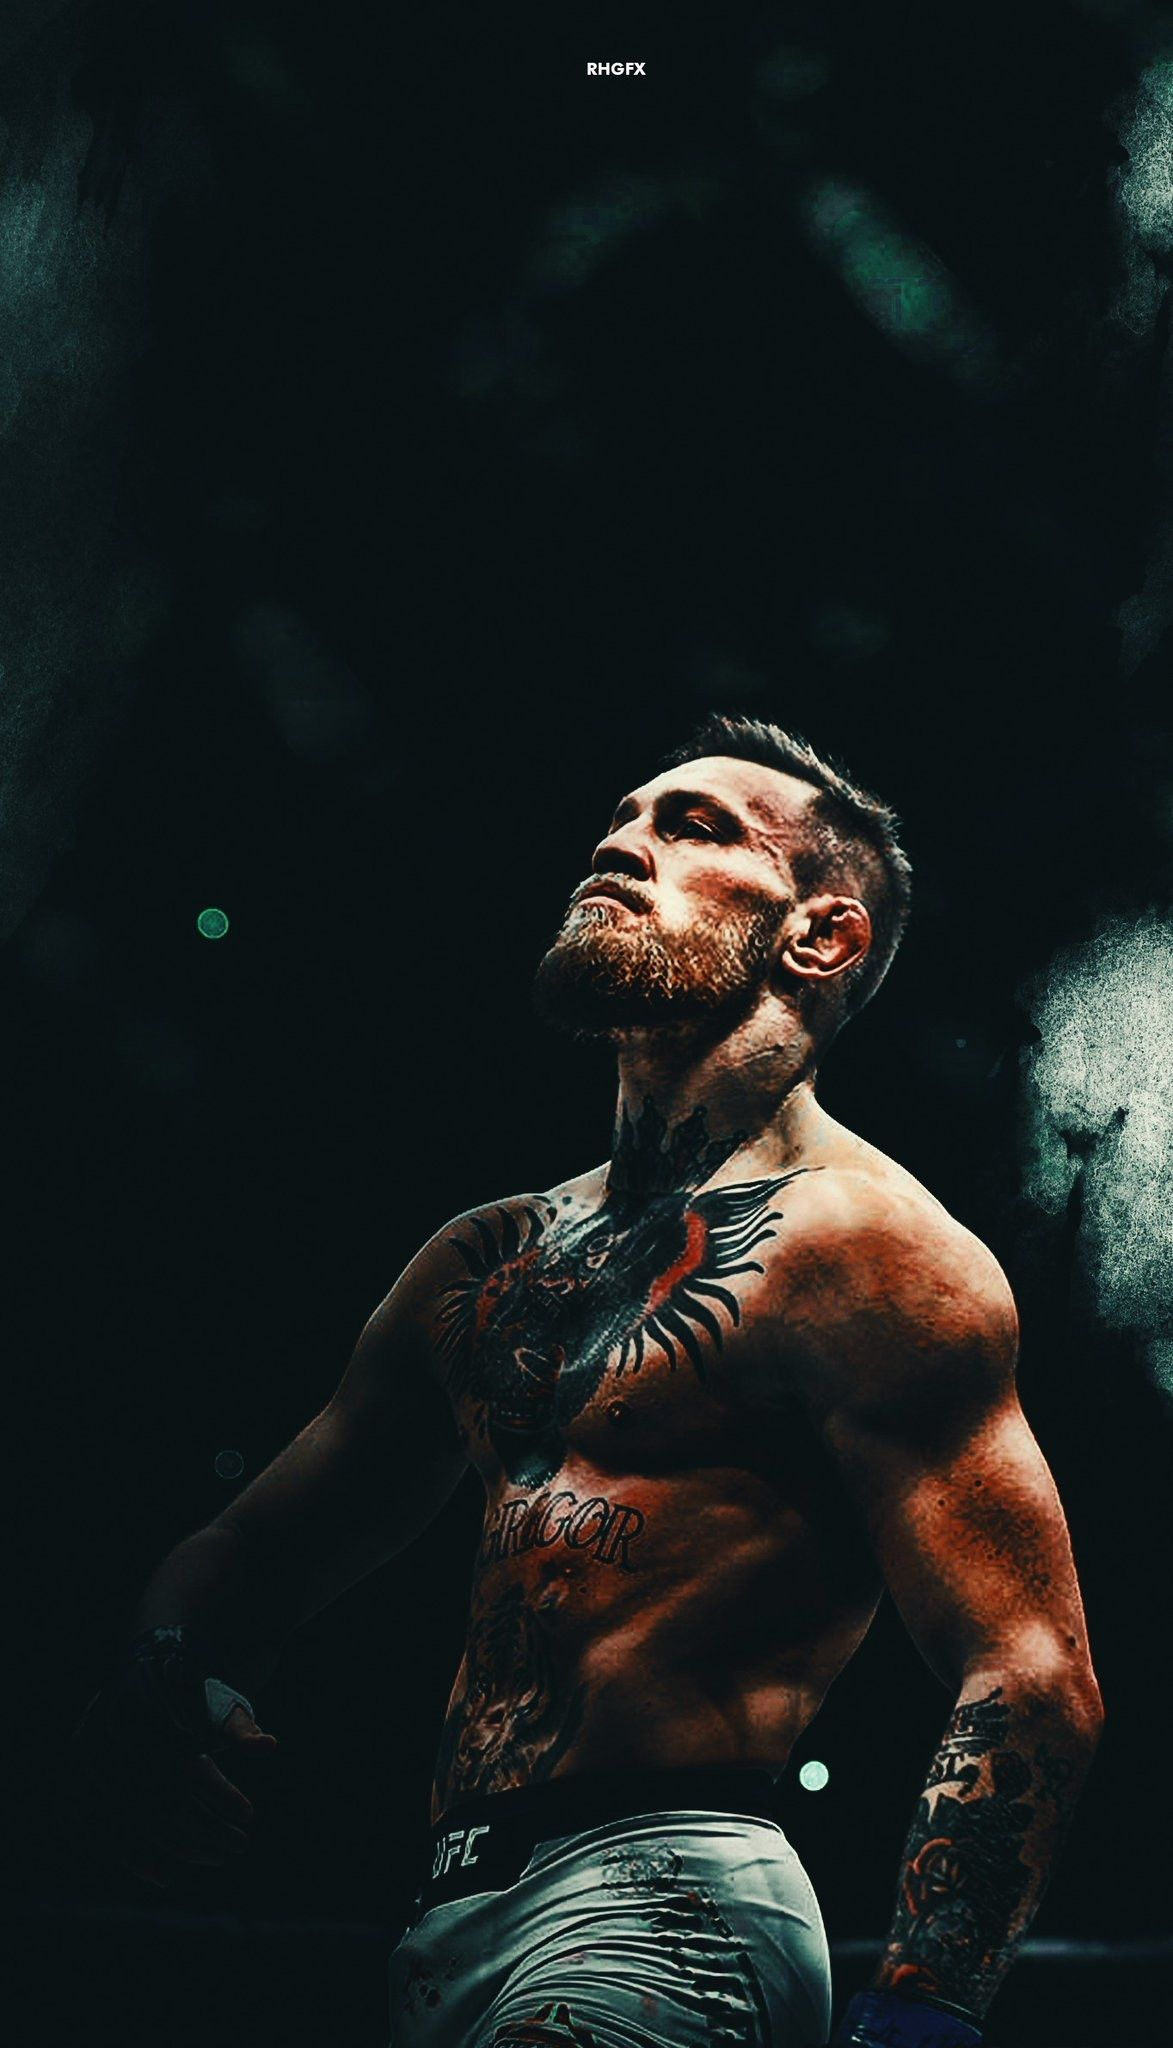 Conor Mcgregor Quotes Wallpaper Images Festival Wallpaper Mcgregor Wallpapers Conor Mcgregor Wallpaper Conor Mcgregor Quotes